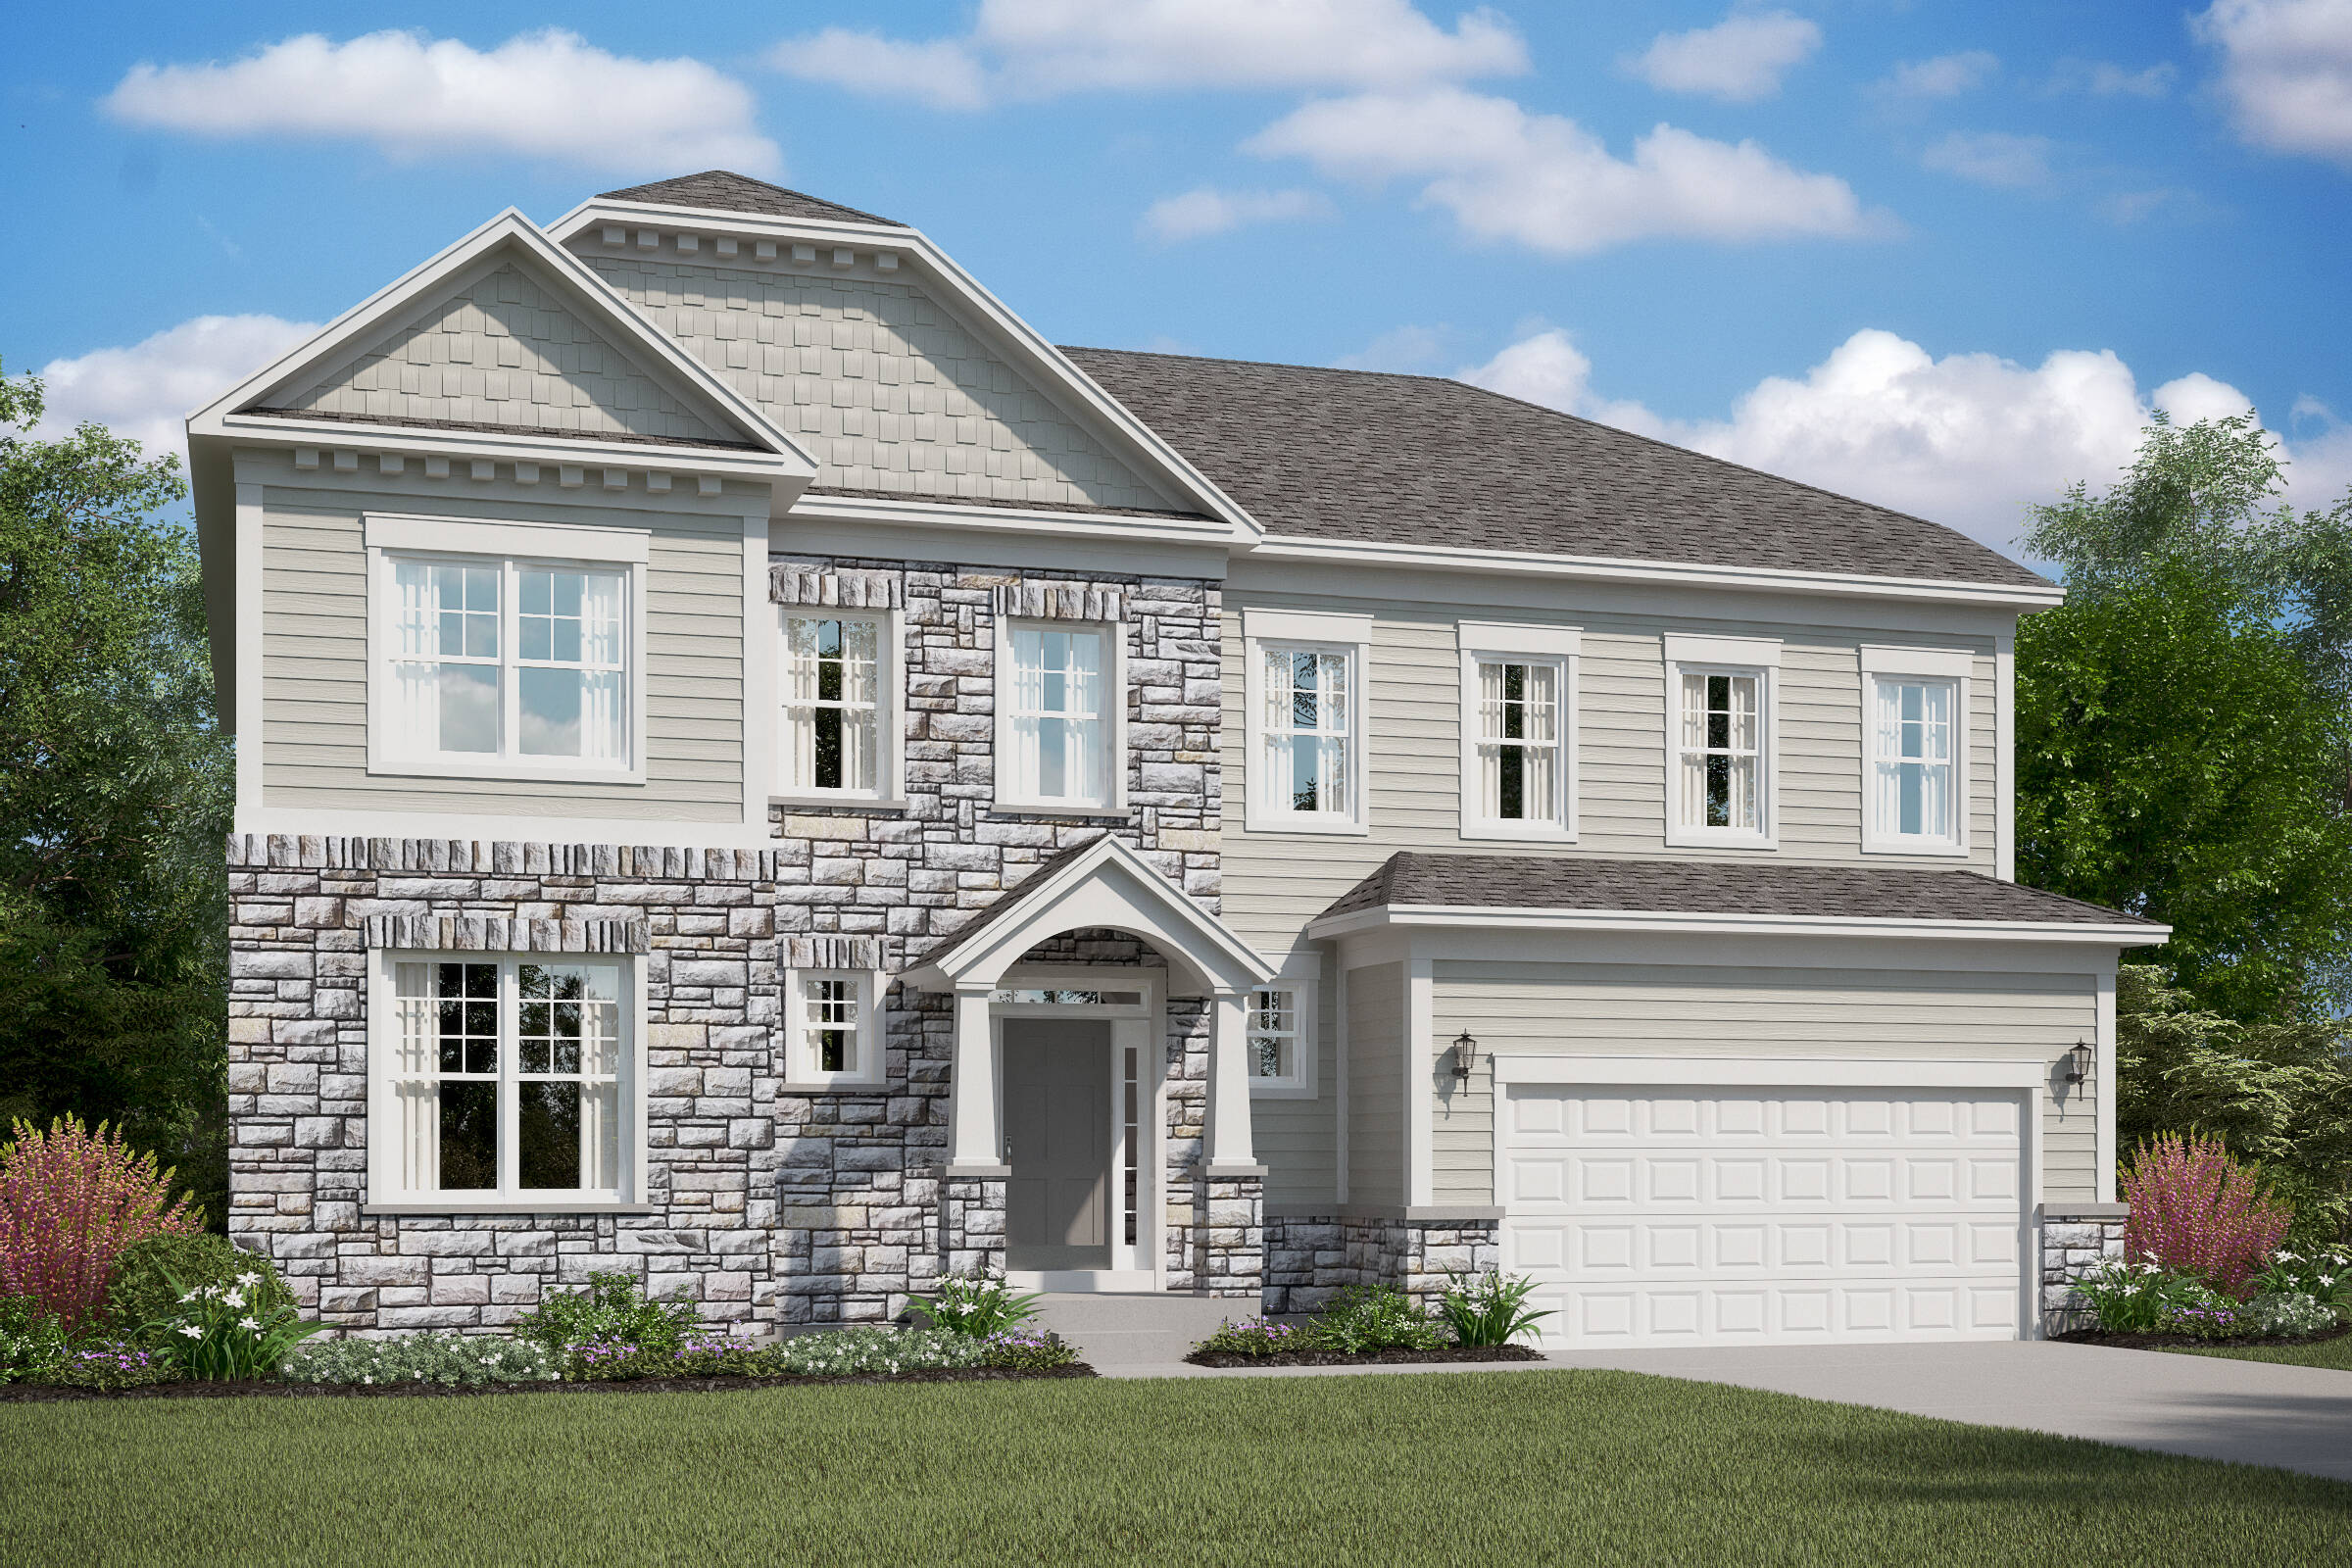 louisville-ft-new-homes-at-burke-junction-in-virginia